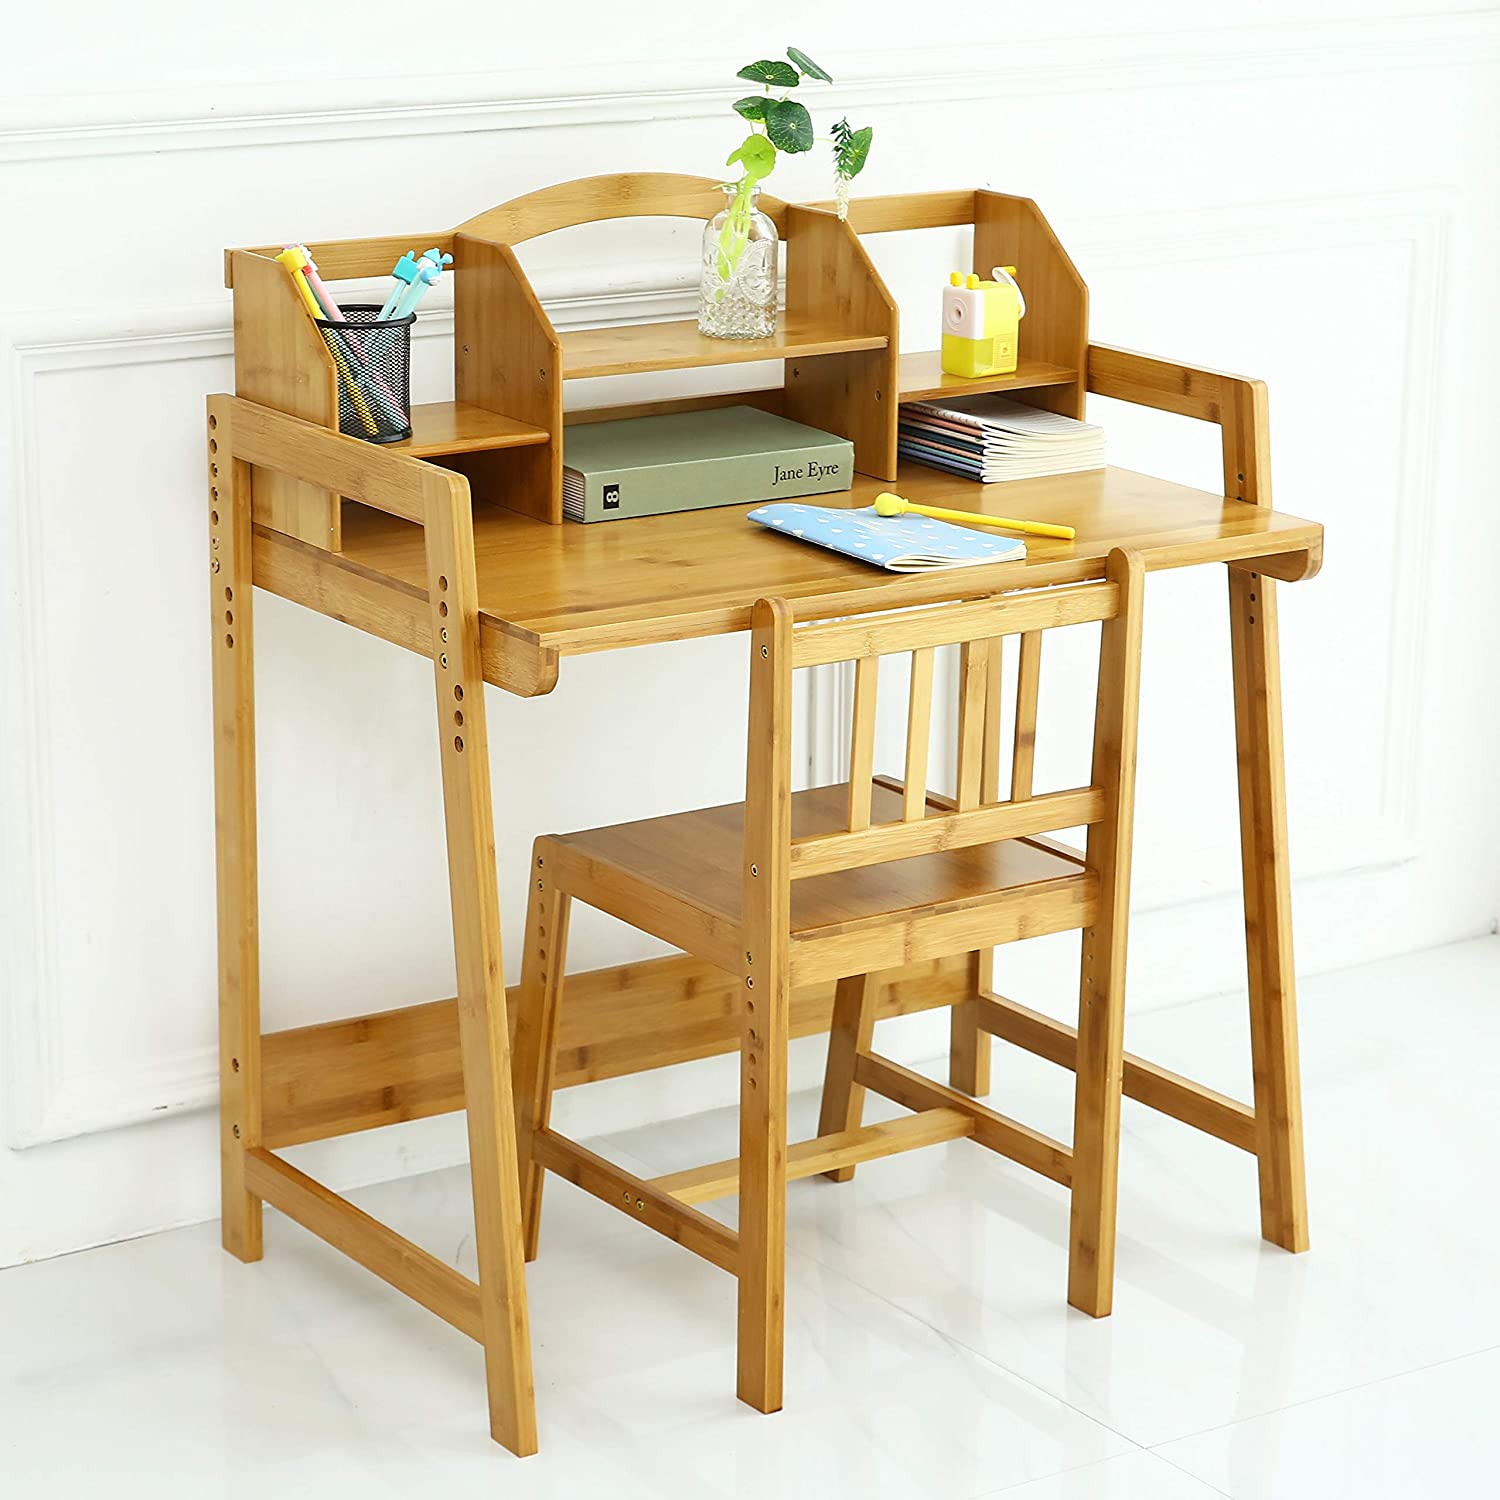 5 Best Study Table For Kids